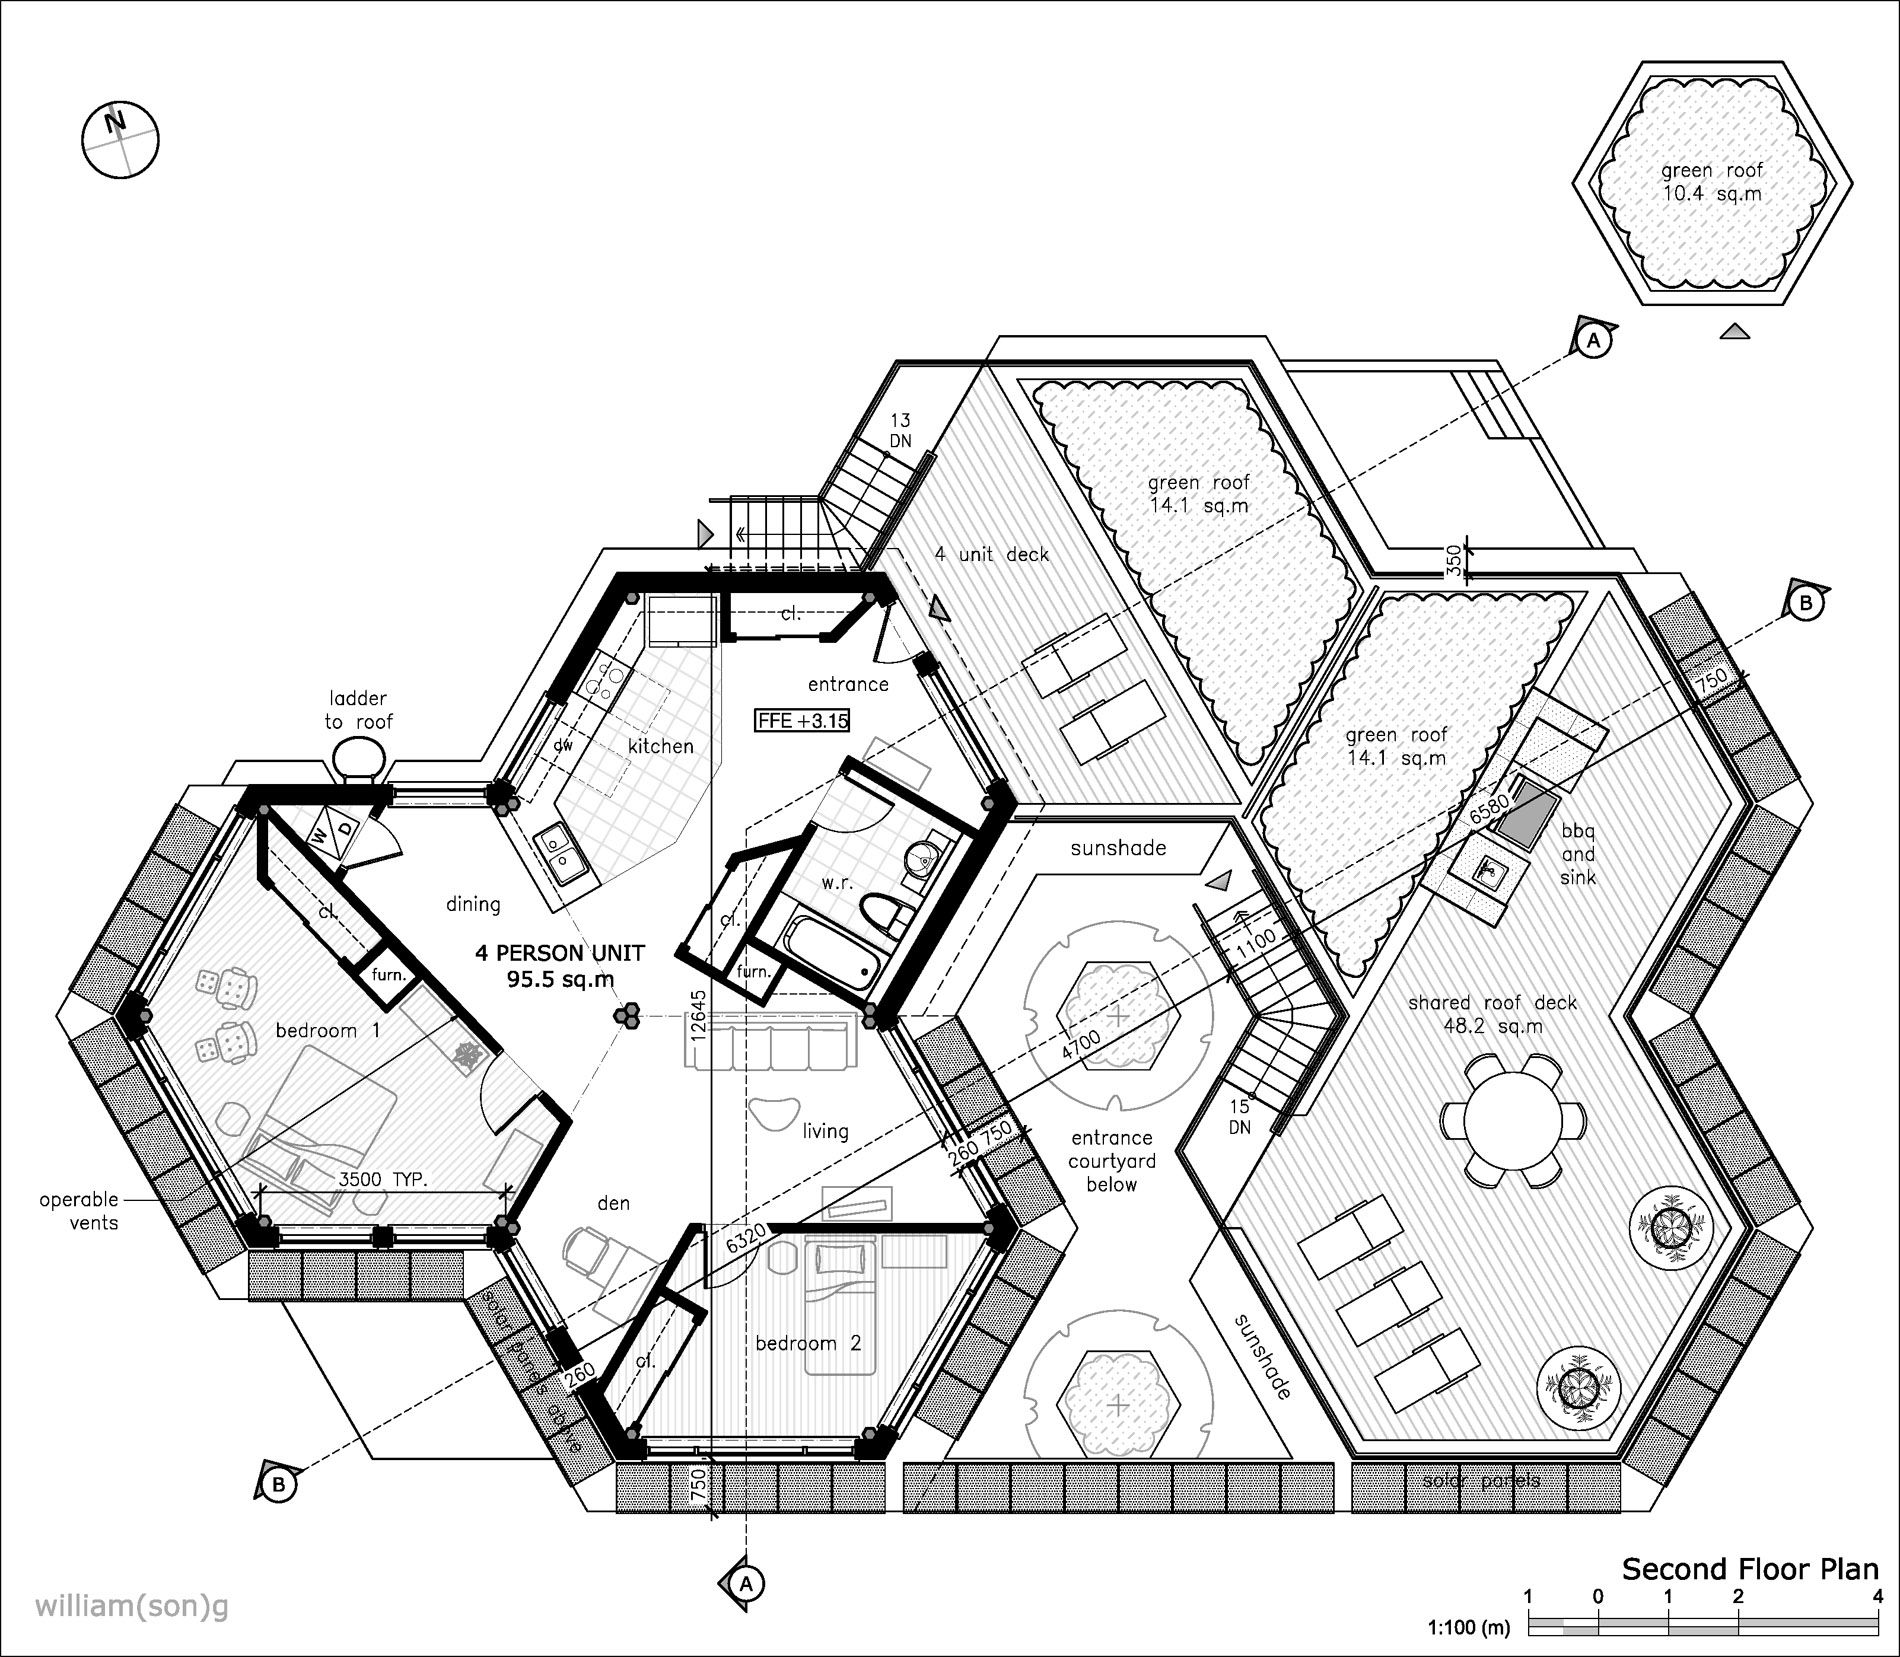 Hexagon house plans willian son g buscar con google for House plan search